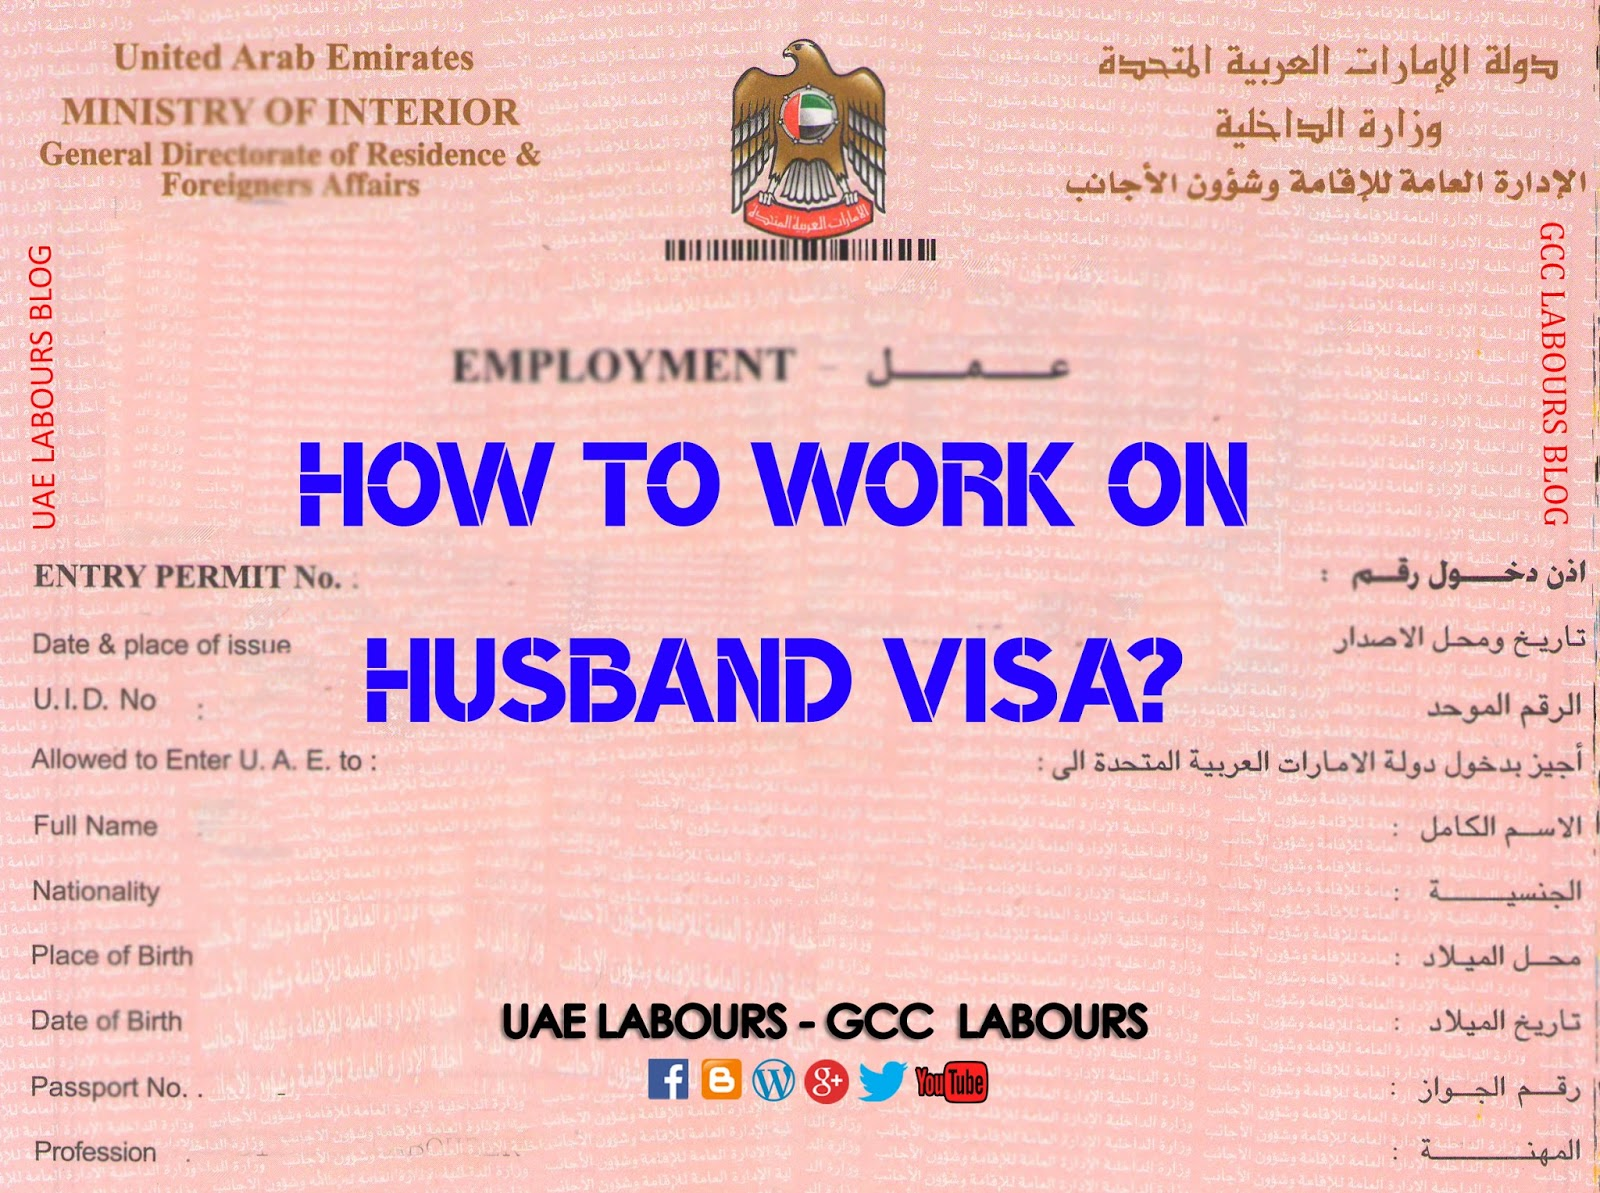 Working on husband visa housewife uae labours welcome to uae labours free platform a short but an important guide is here for our visitors around the globe especially for those ladies or spouse who spiritdancerdesigns Choice Image